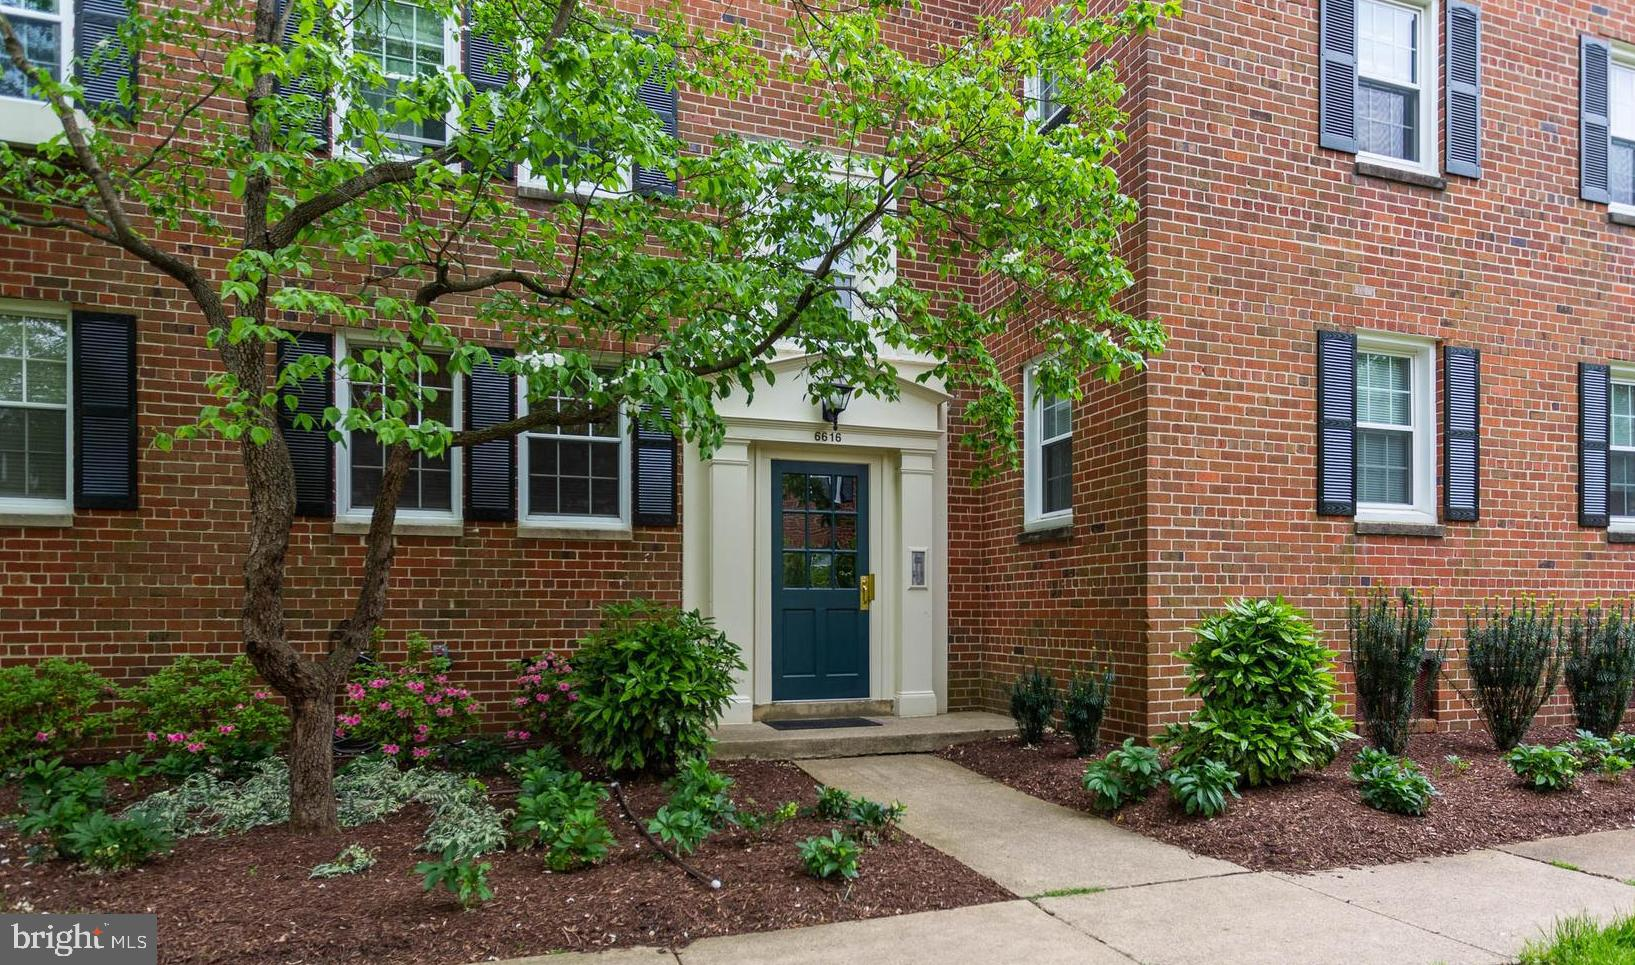 BRIGHT AND OPEN TWO BEDROOM ONE BATH CONDO. LOVELY MAIN LEVEL CONDO WITH RECENTLY  UPDATED KITCHEN!